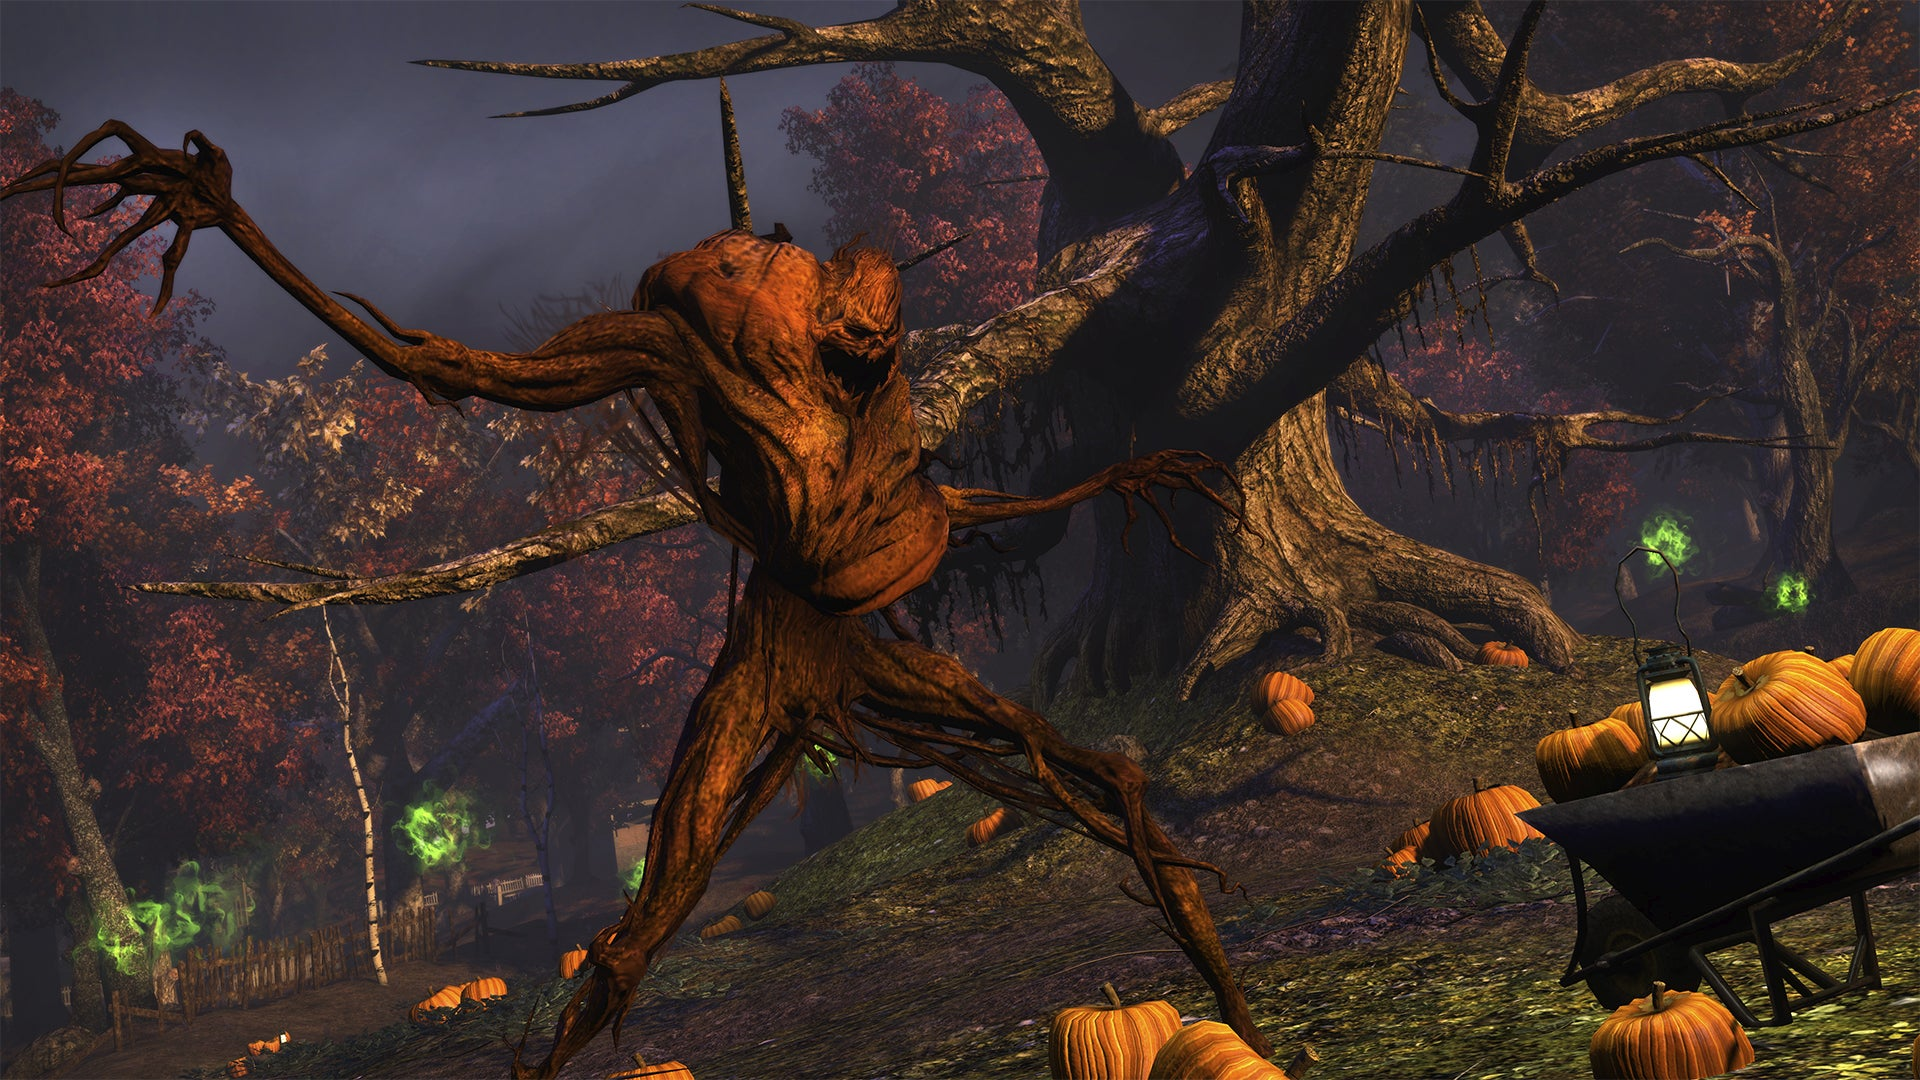 The revamped The Secret World Legends launches in June